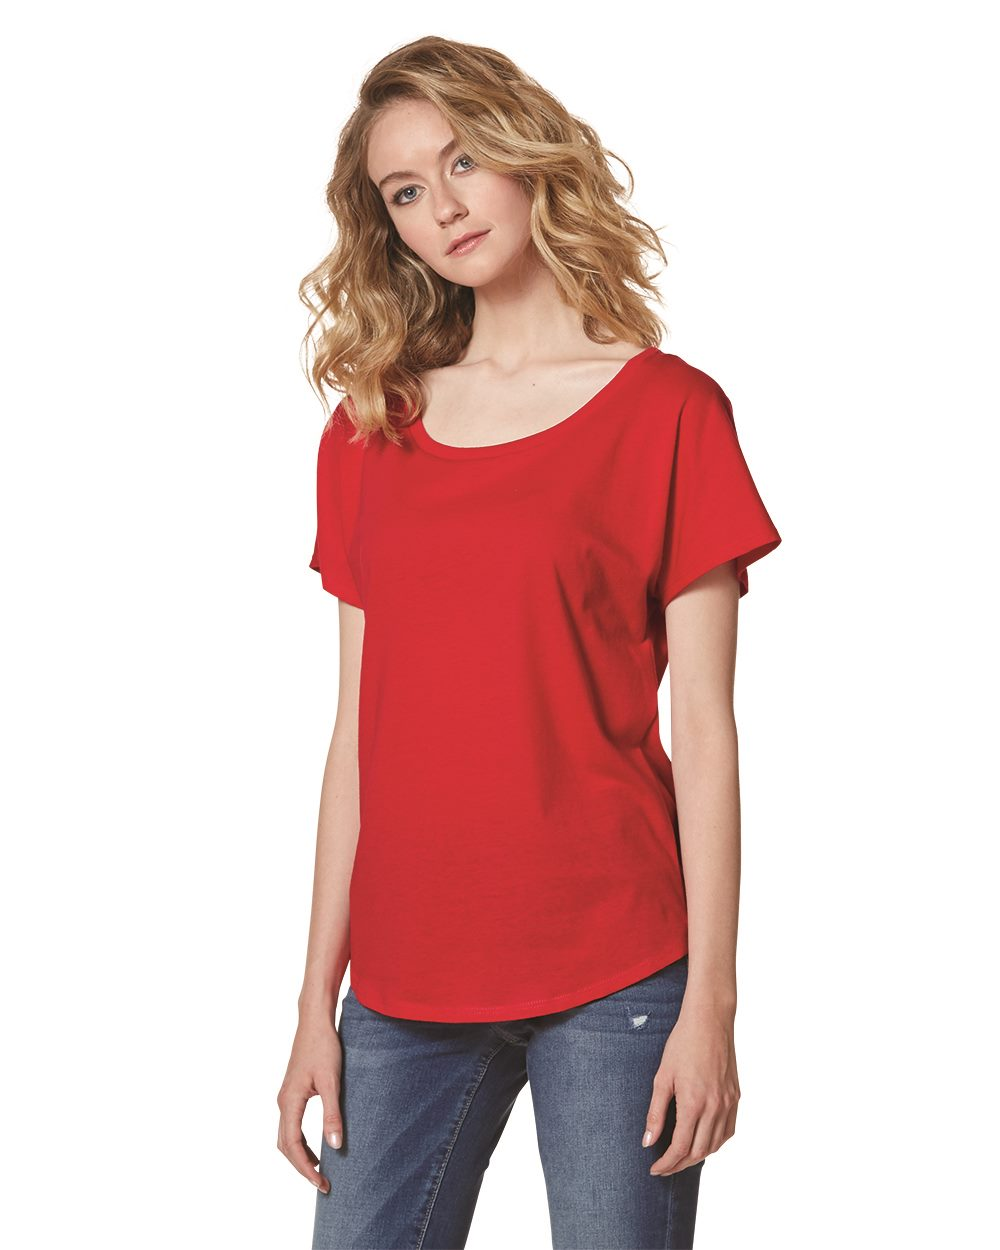 Next Level 1560 - Women's Ideal Dolman